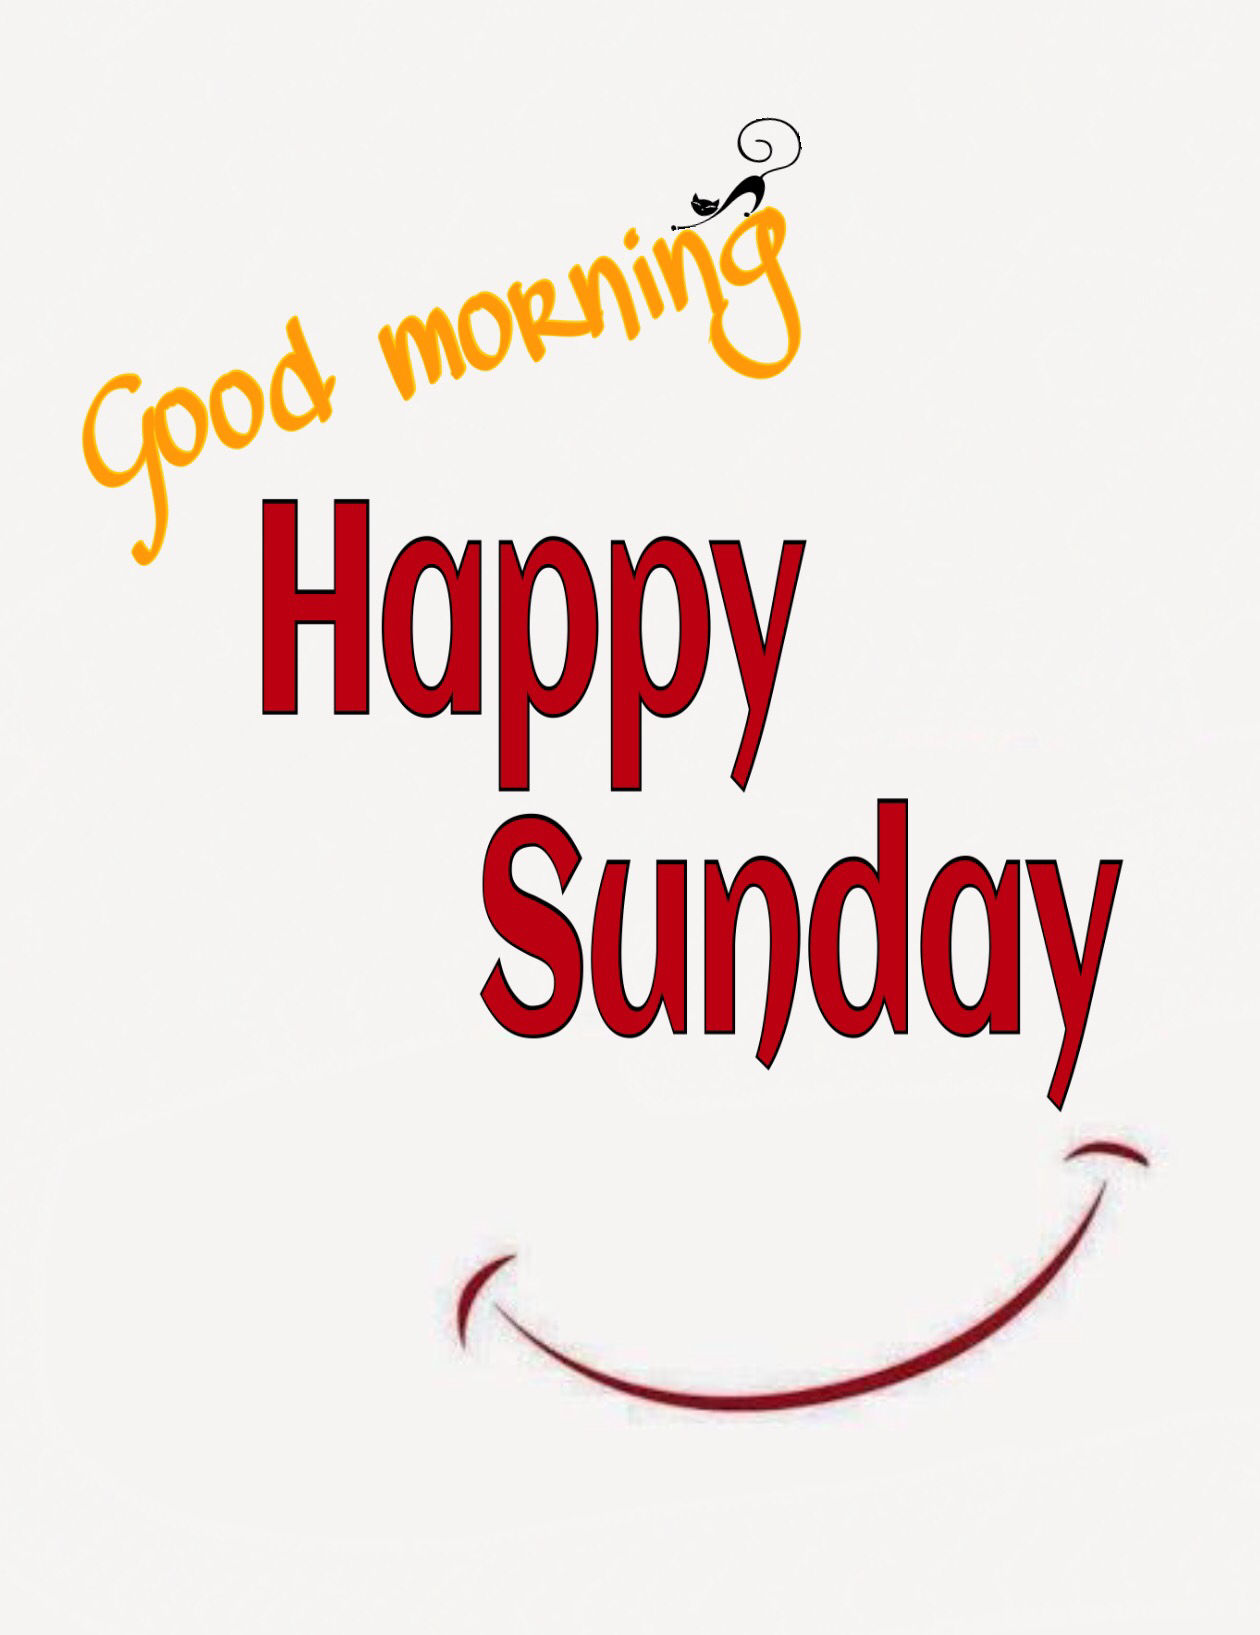 Good Morning Sunday Images And Quotes Happy Funday Wishes: Good Morning Happy Sunday Smile Pictures, Photos, And